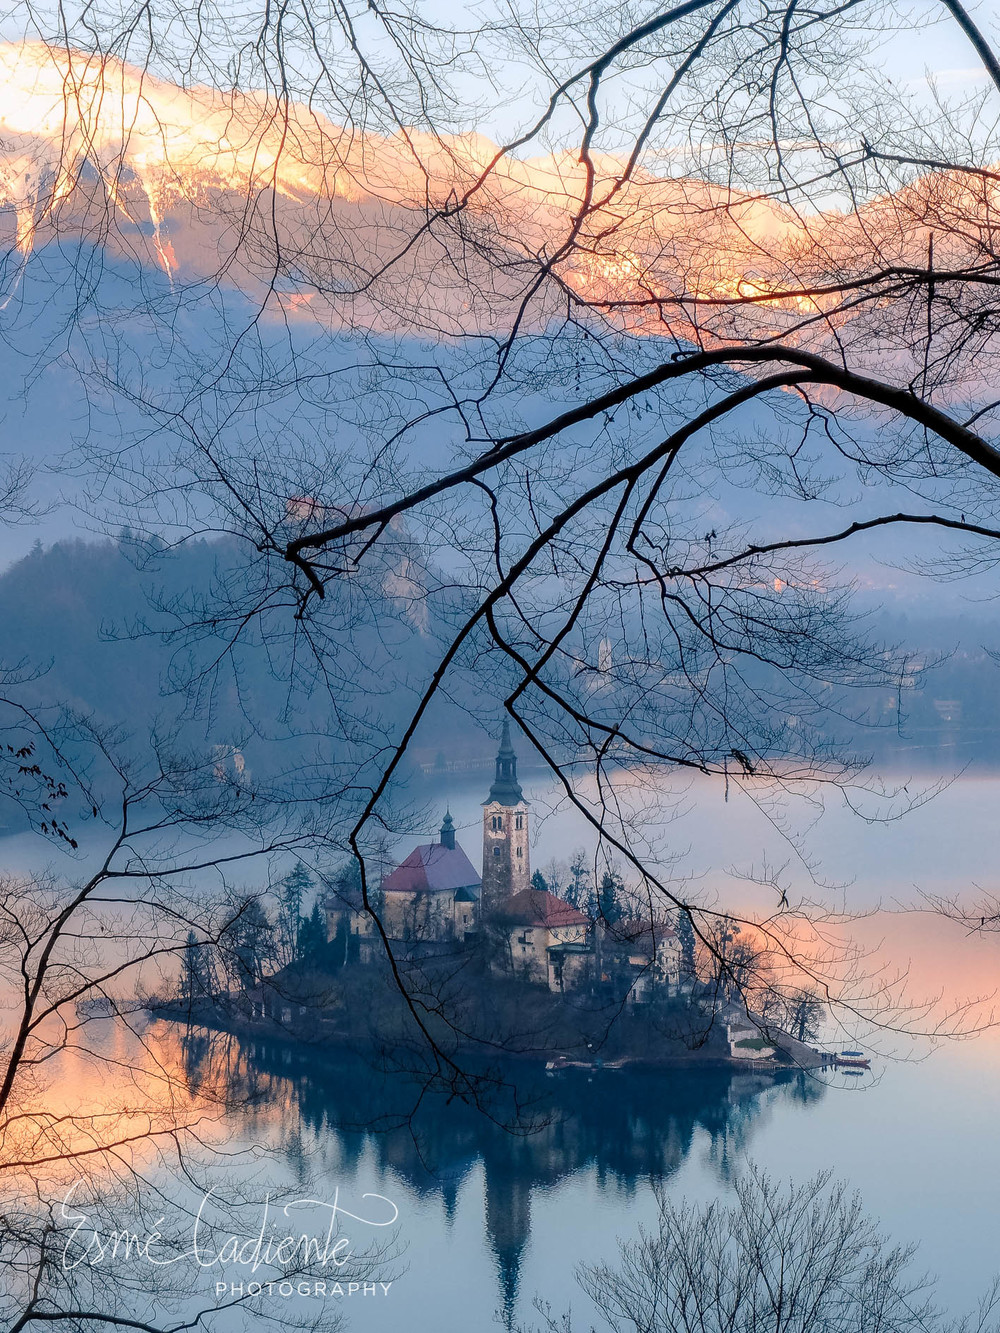 According to legend, an ancient temple of a Slavic goddess once stood in the place of this mystical church that lies in present-day Lake Bled, draped by the Julien Alps.